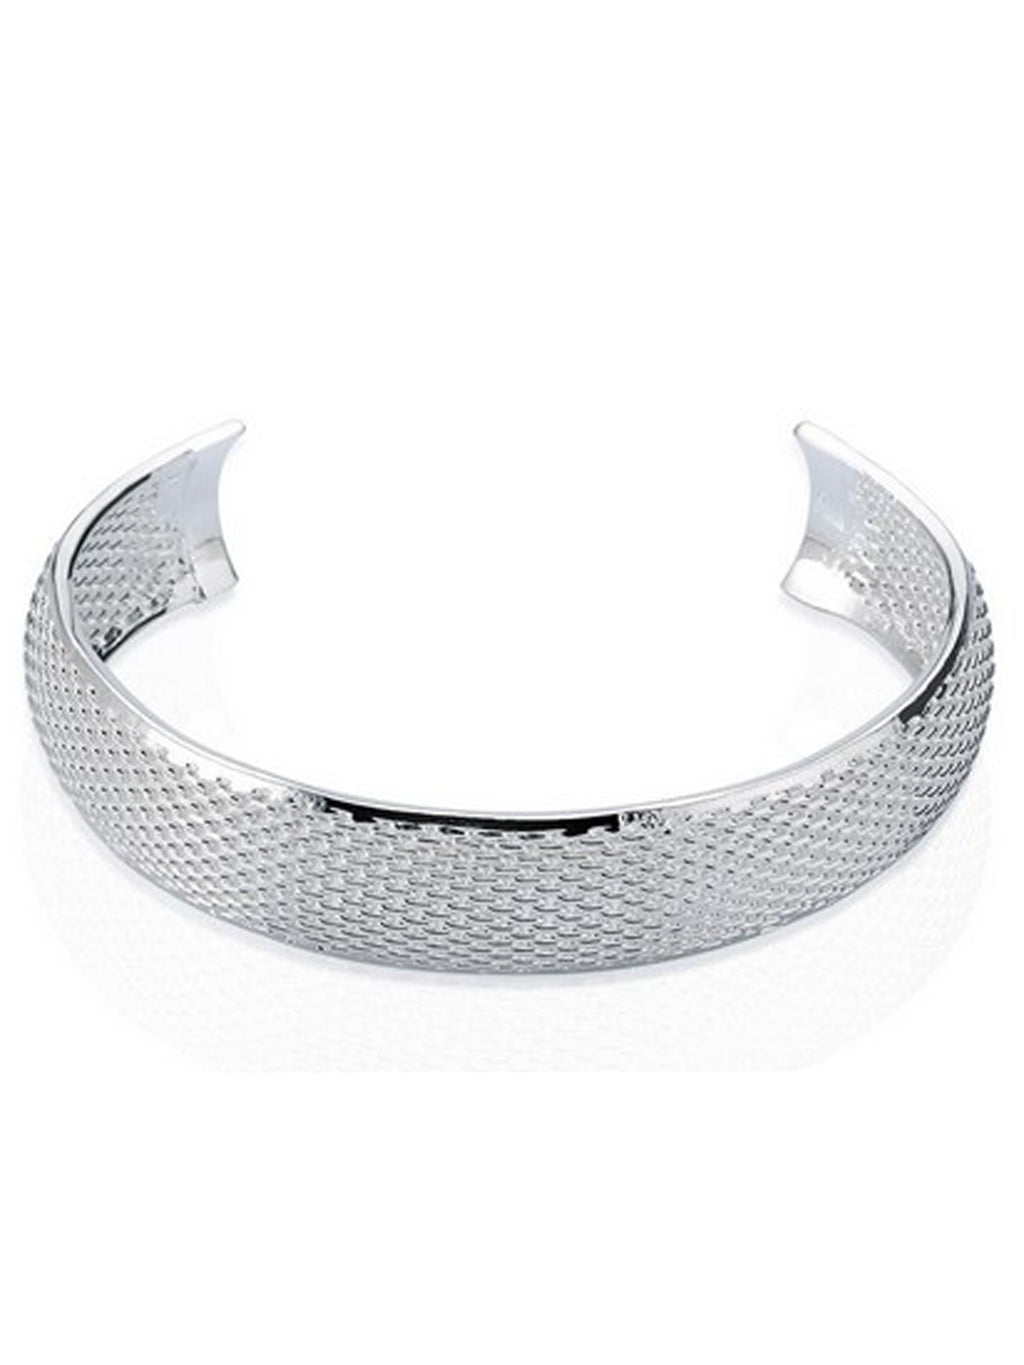 Sterling Silver Plated Mesh Cuff Bracelet